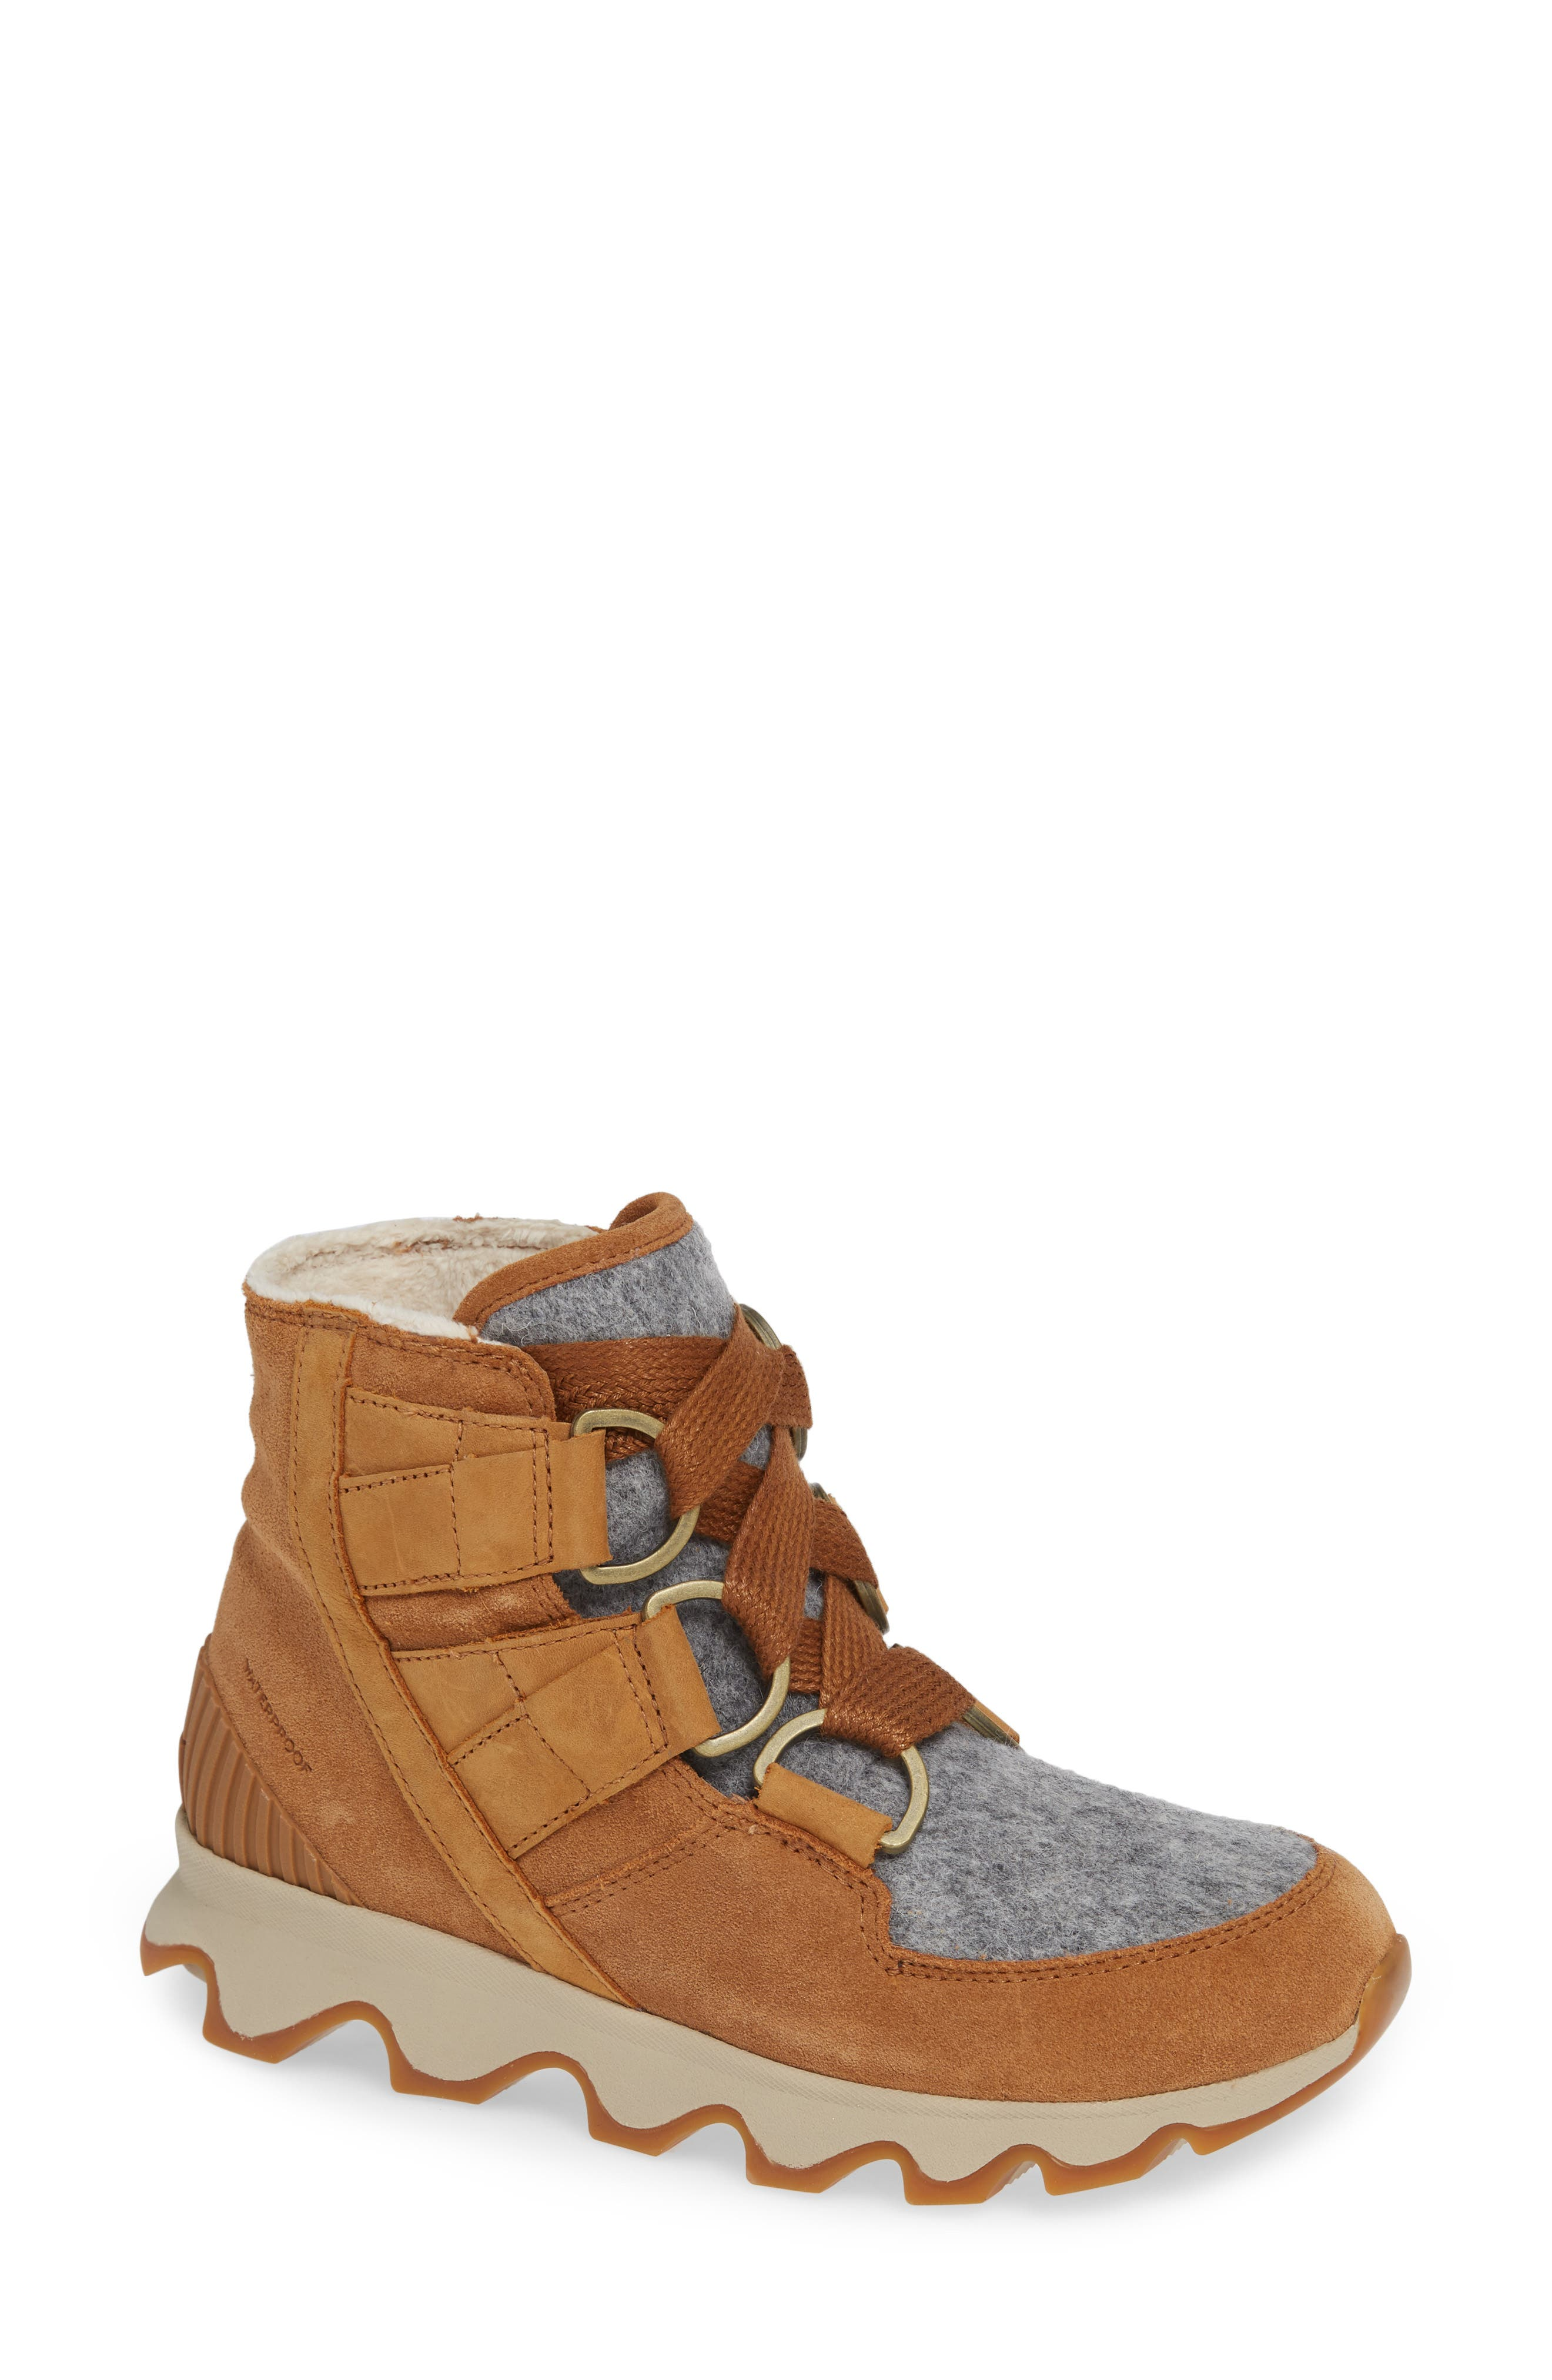 Sorel Kinetic Waterproof Short Lace-Up Boot